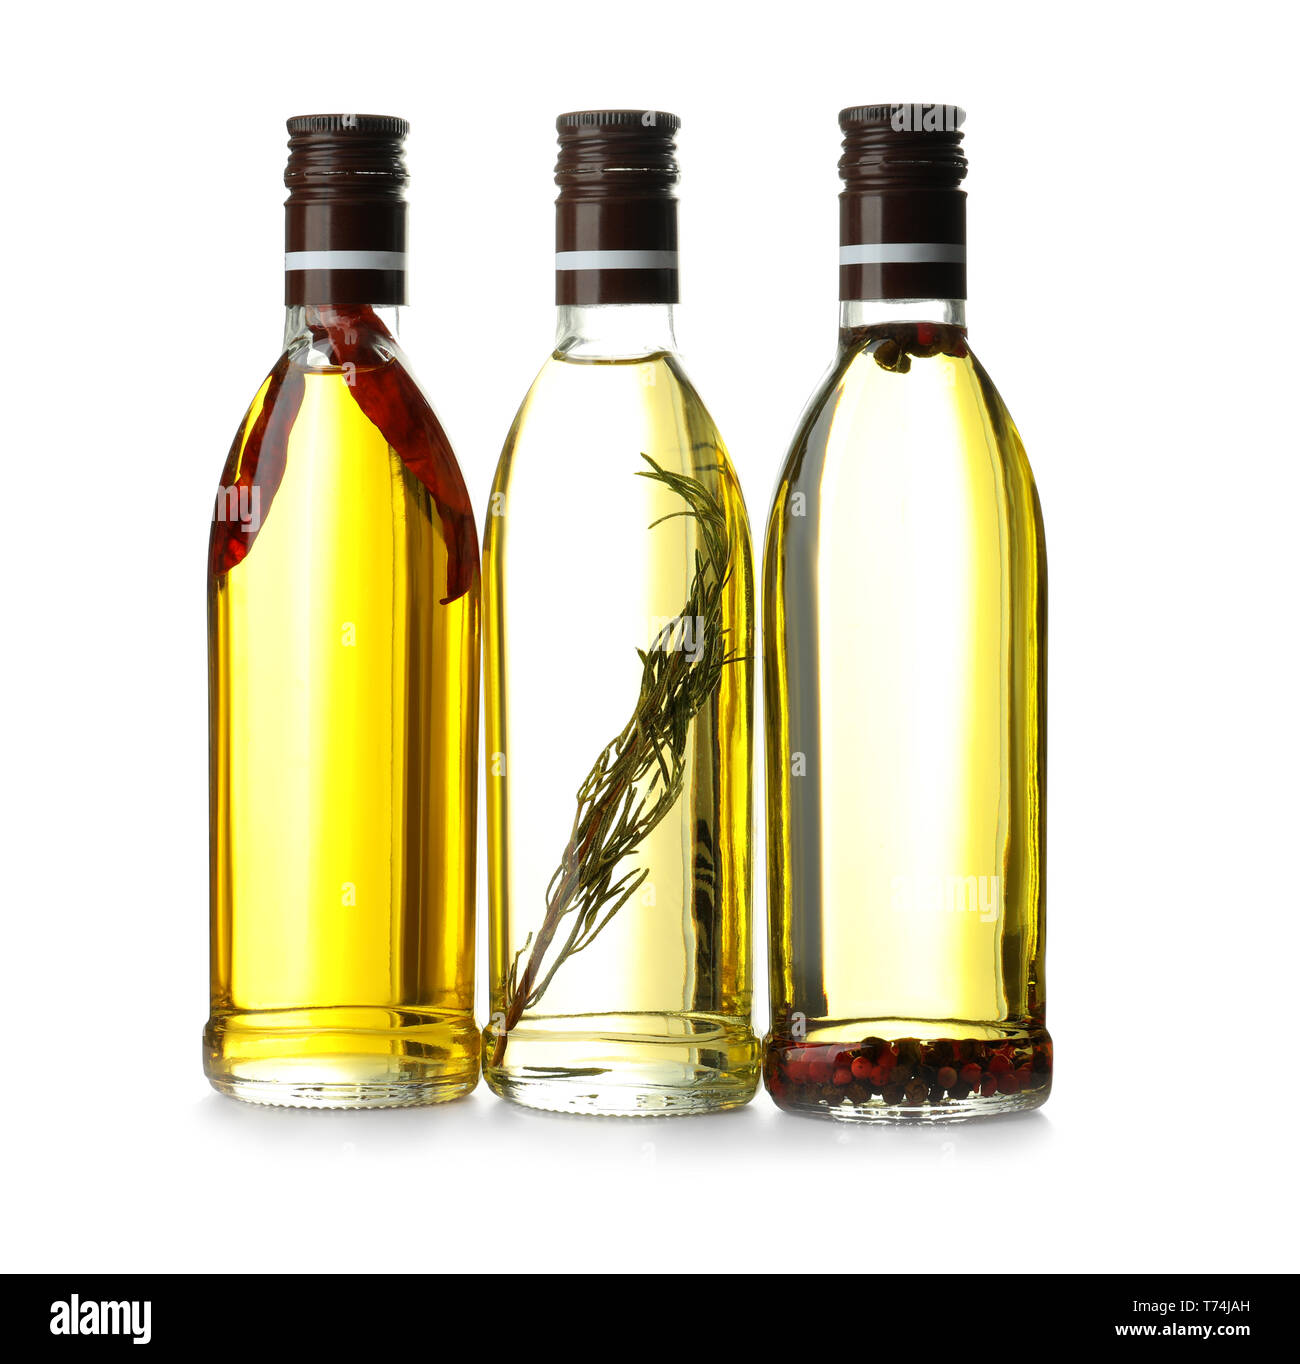 Glass Bottles With Olive Oil On White Background Stock Photo